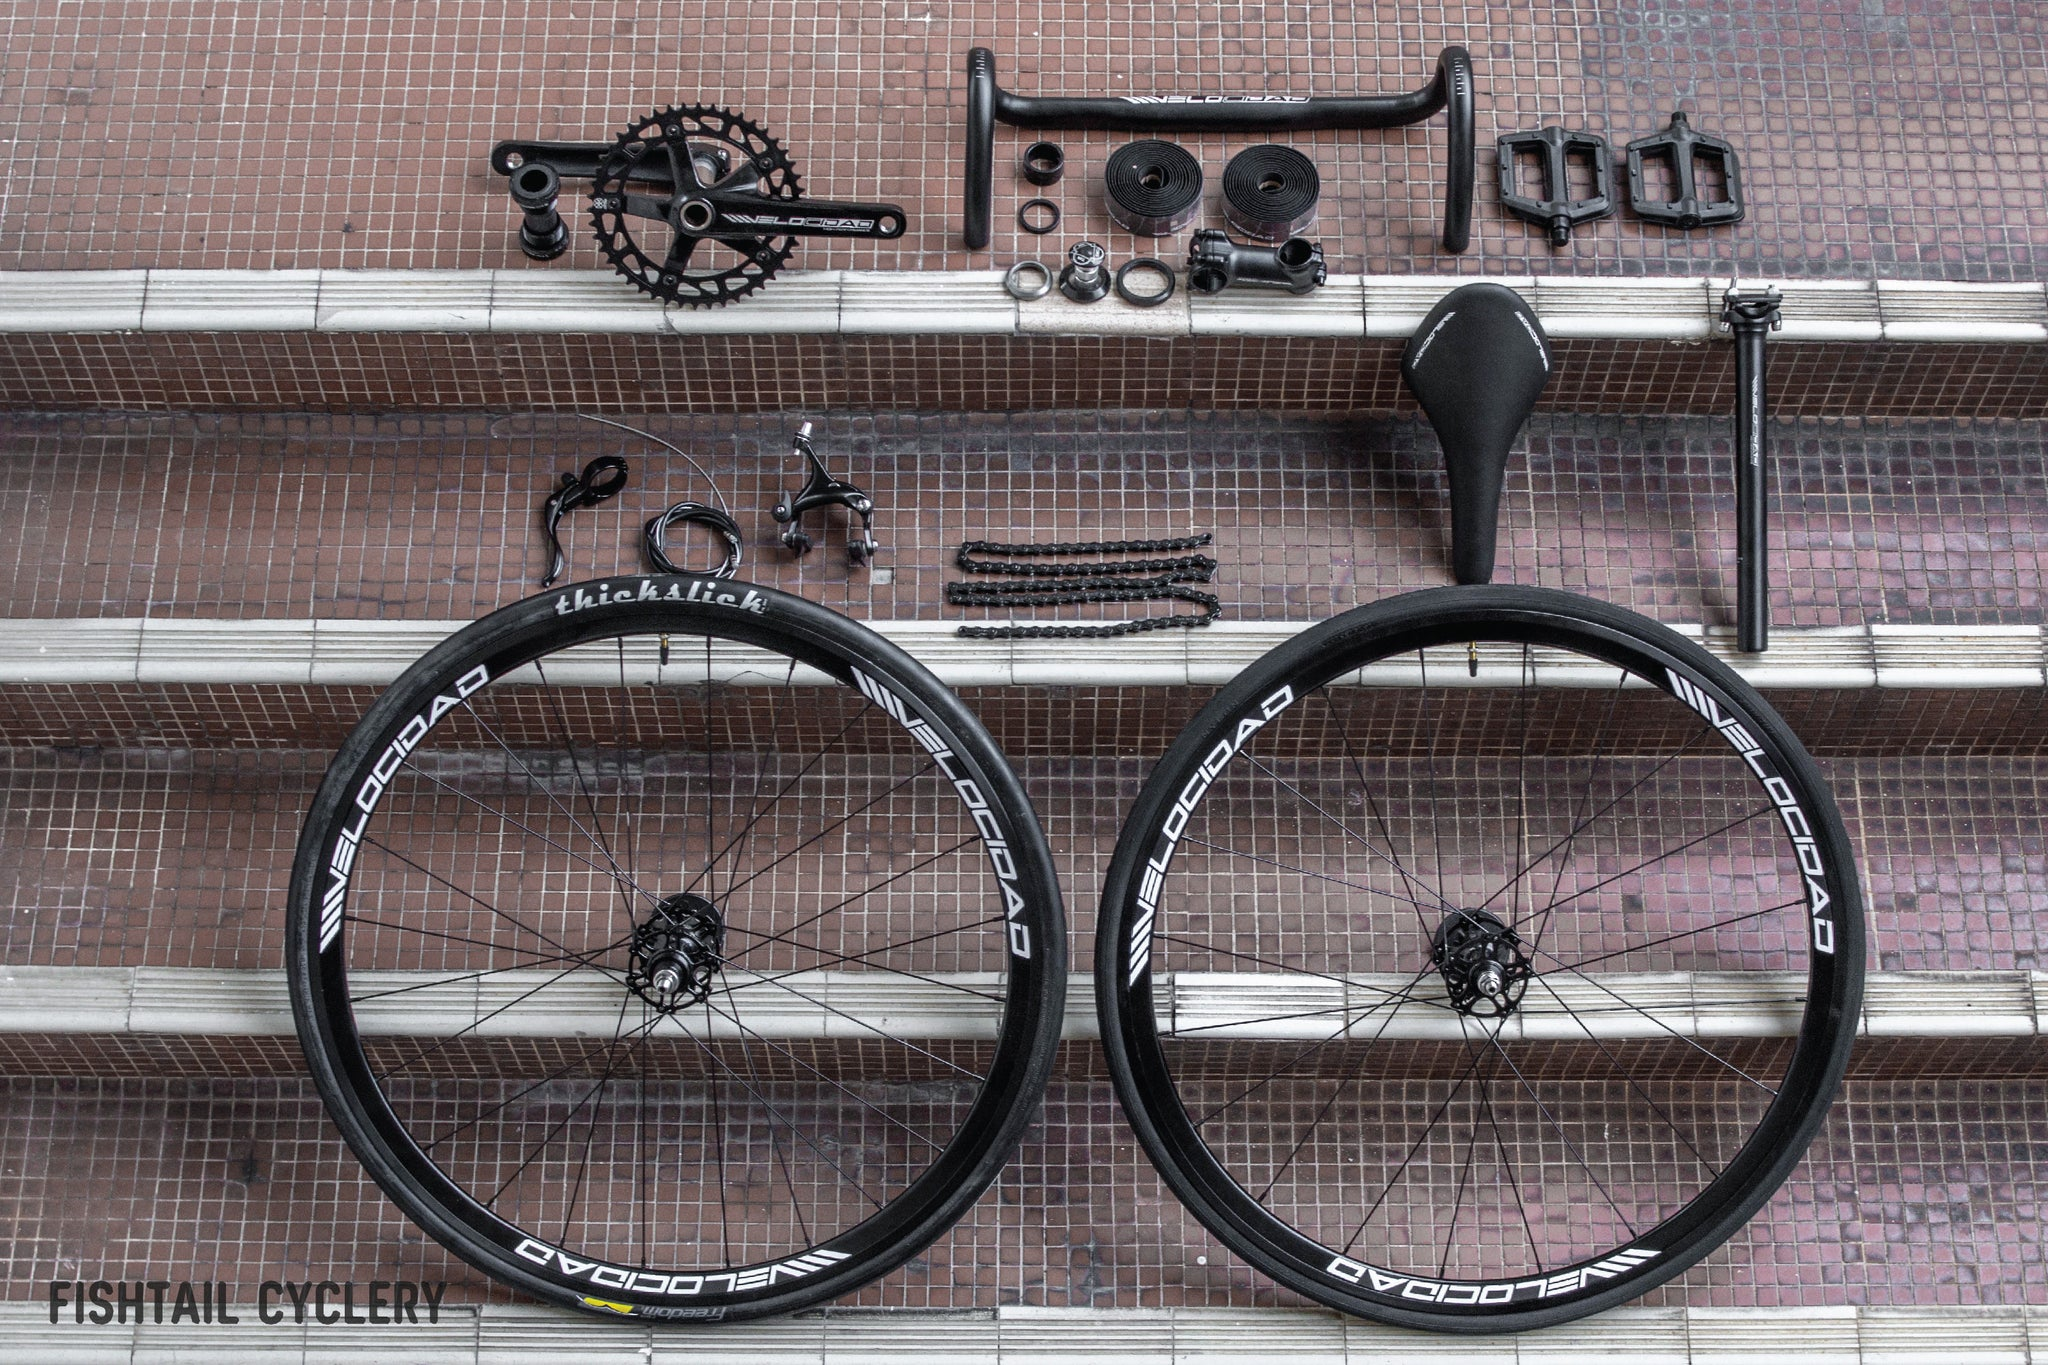 VELOCIDAD Full Set Fixed Gear Bicycle Components/Groupset - FISHTAIL CYCLERY